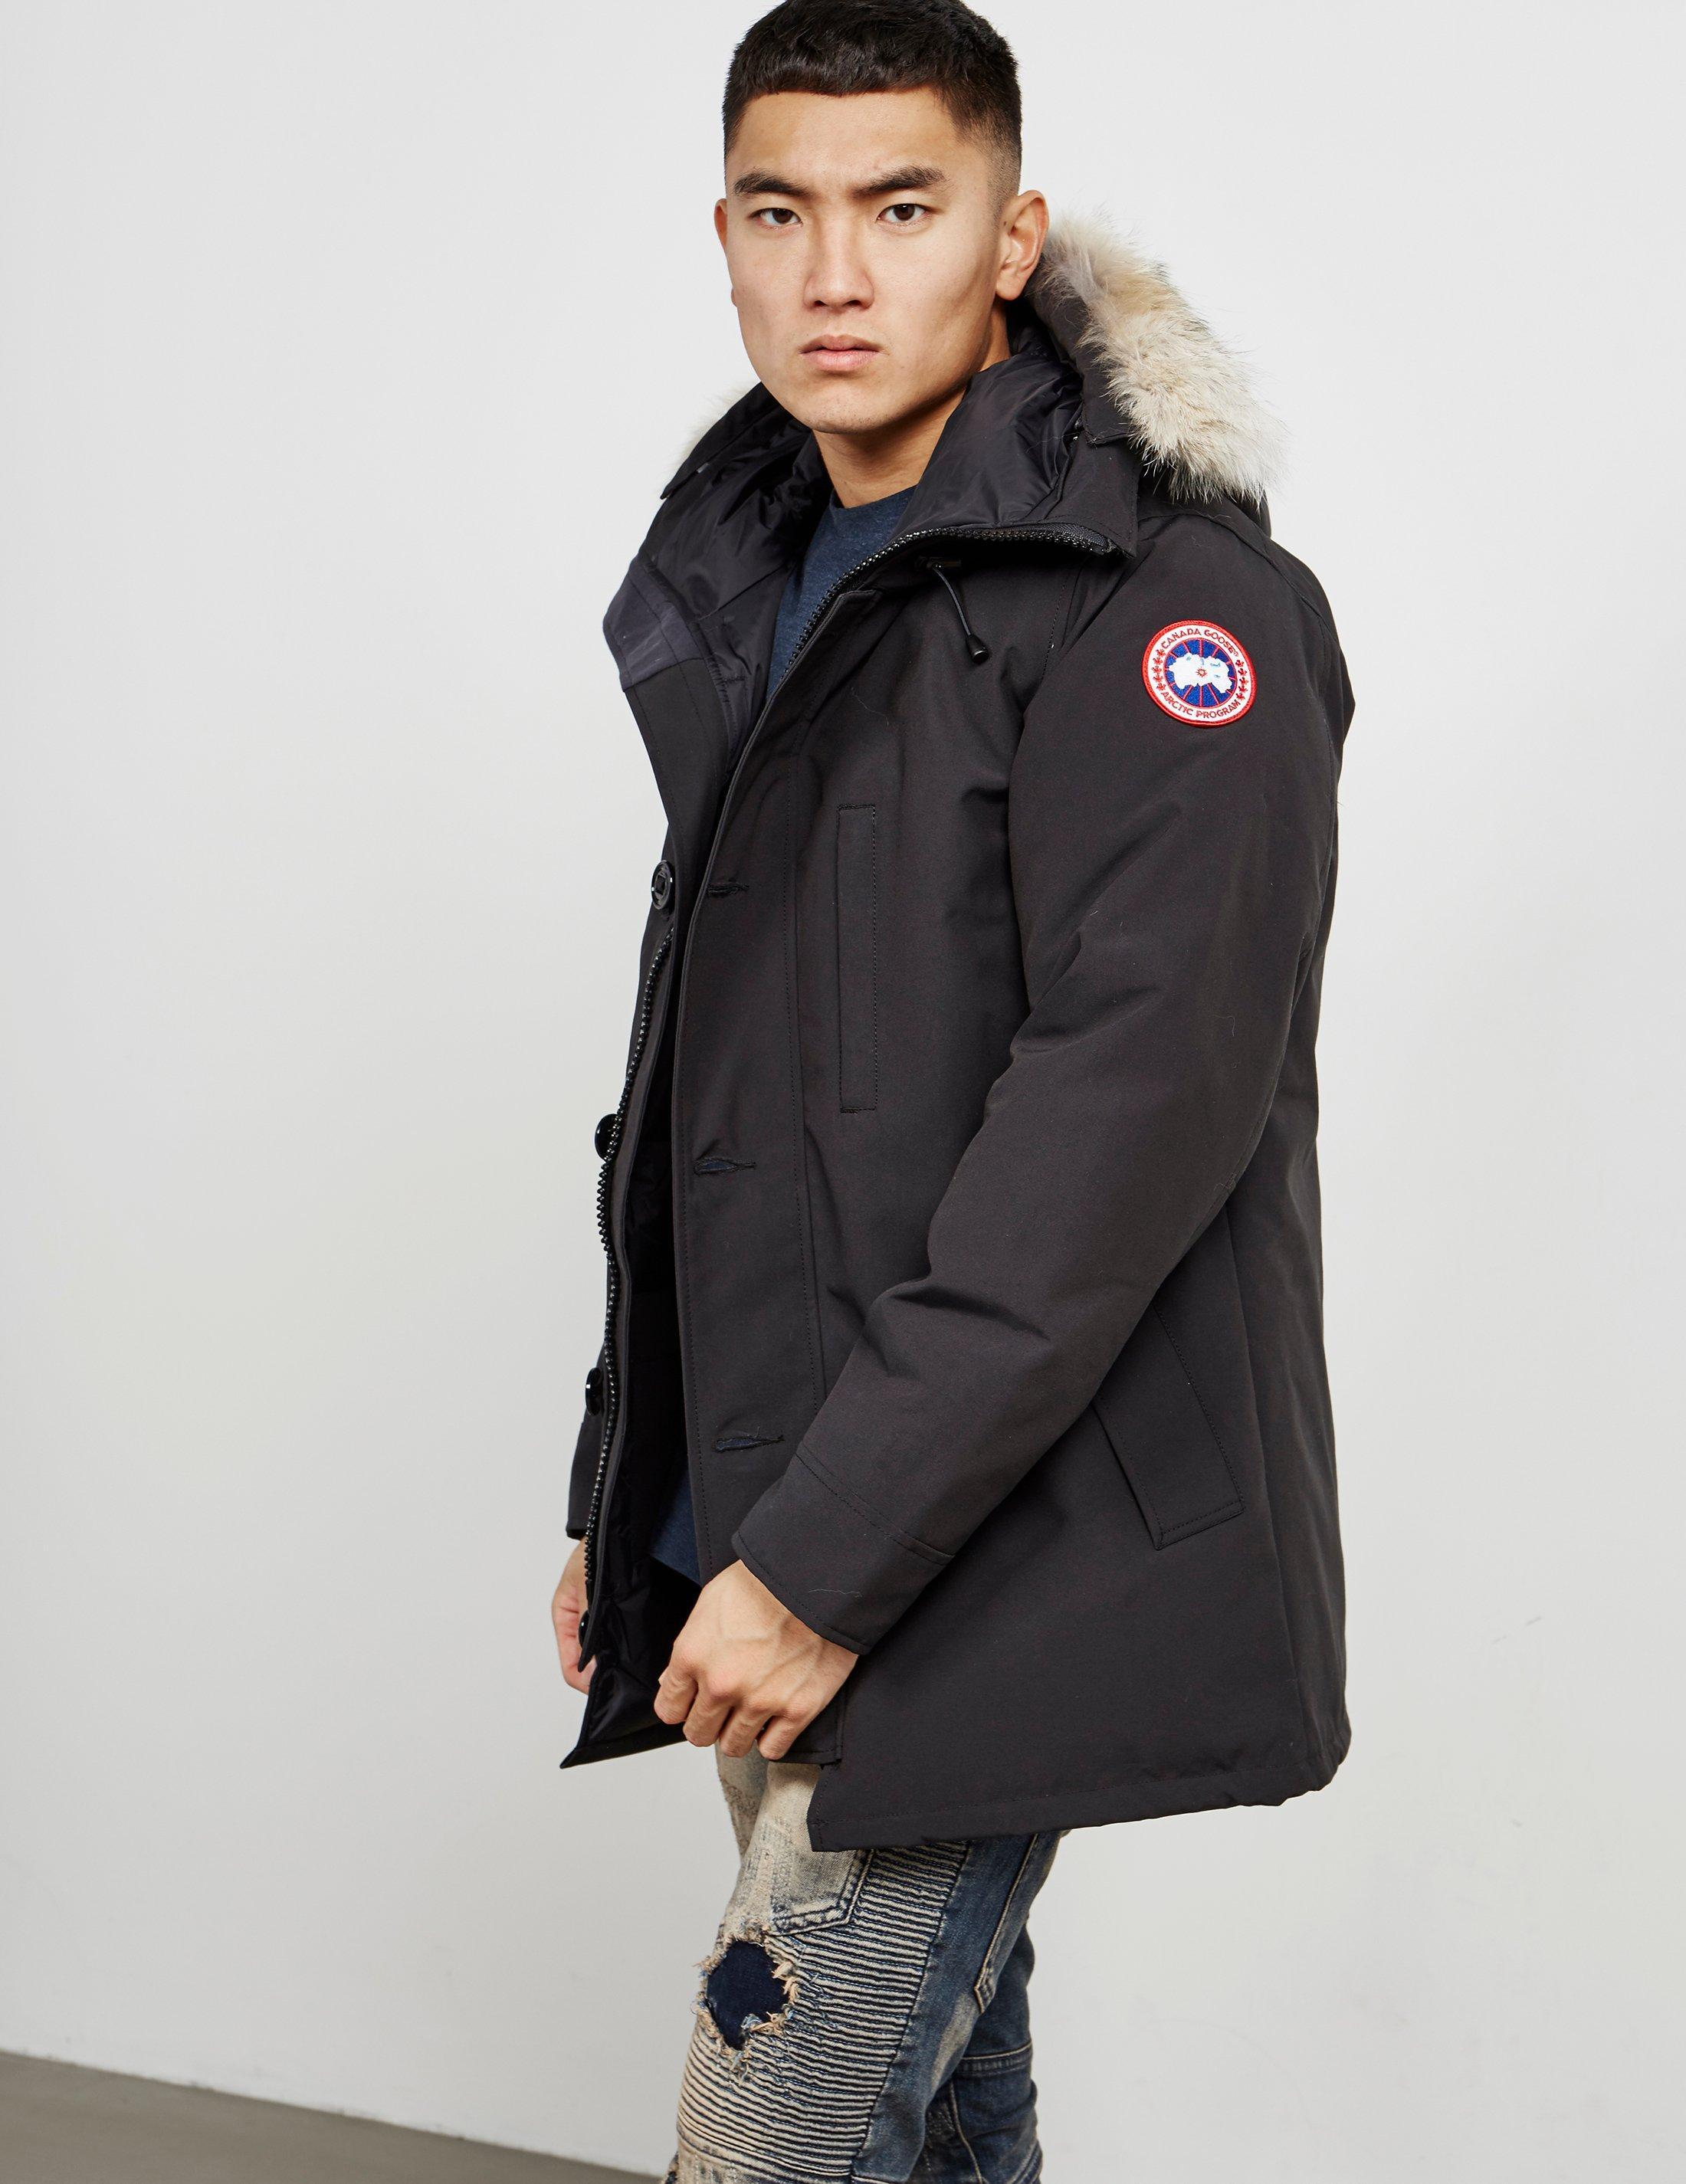 f5f548902fc Canada Goose - Chateau Padded Parka Jacket Black for Men - Lyst. View  fullscreen